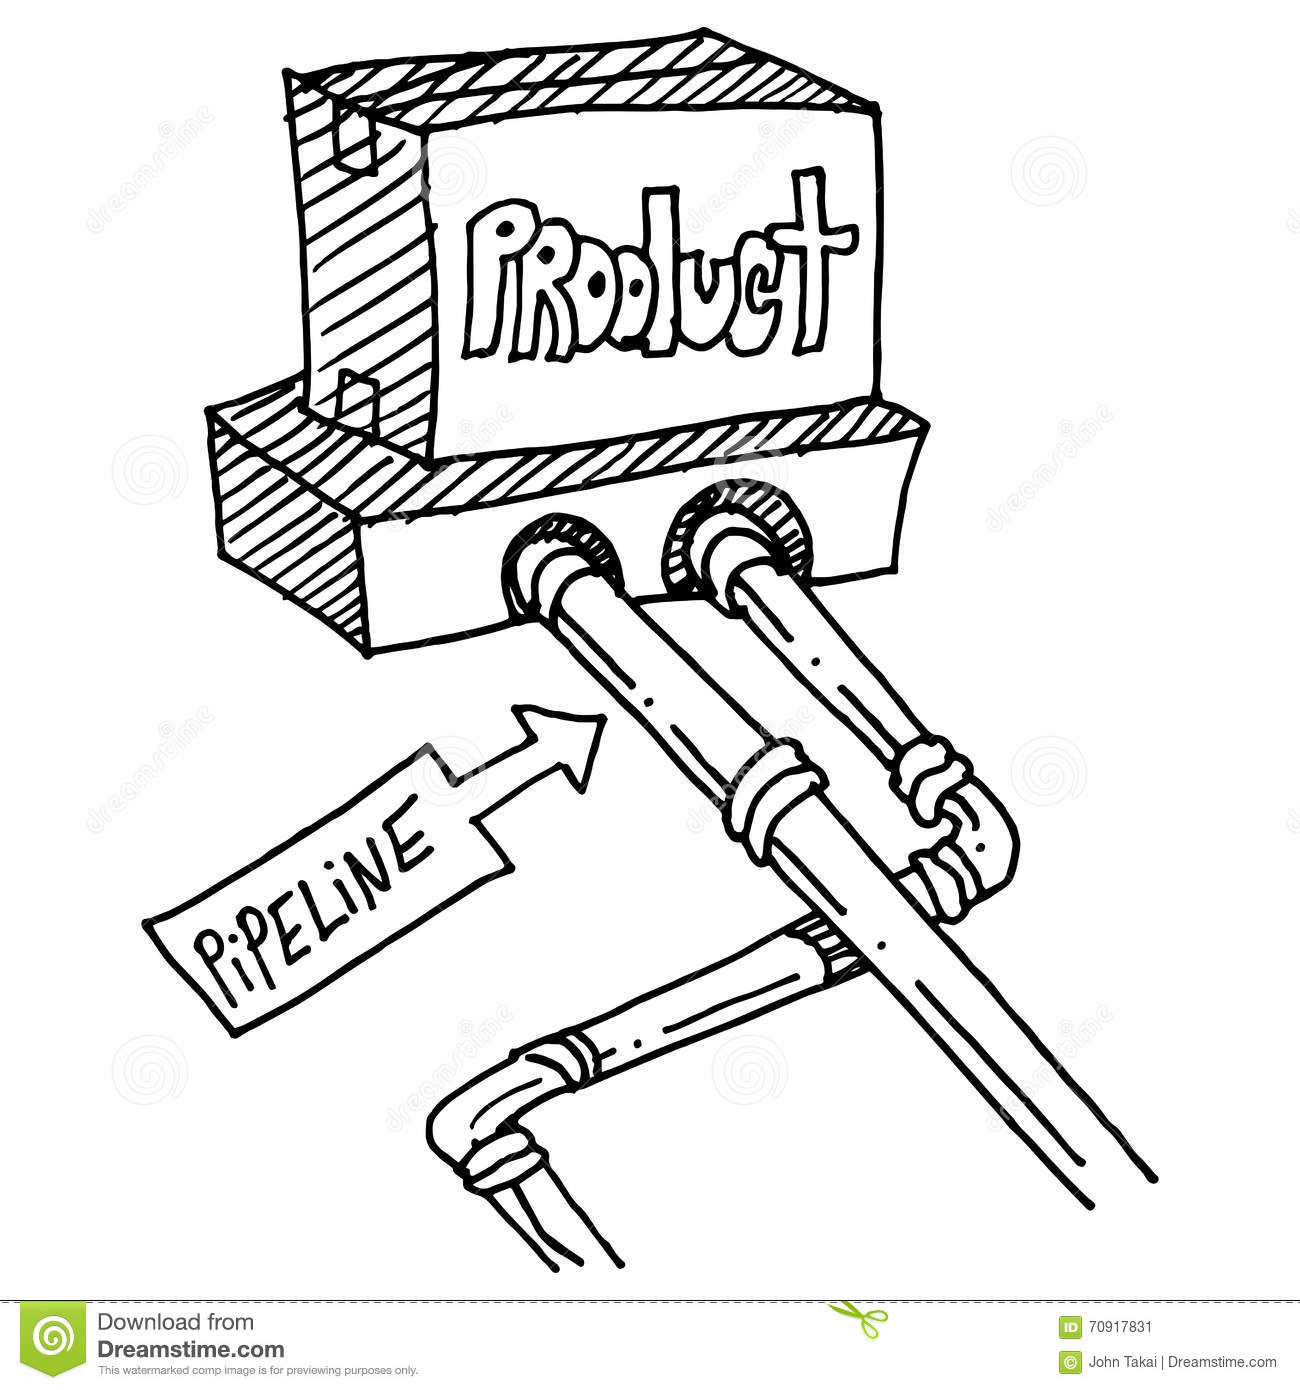 Product Pipeline Drawing Stock Vector